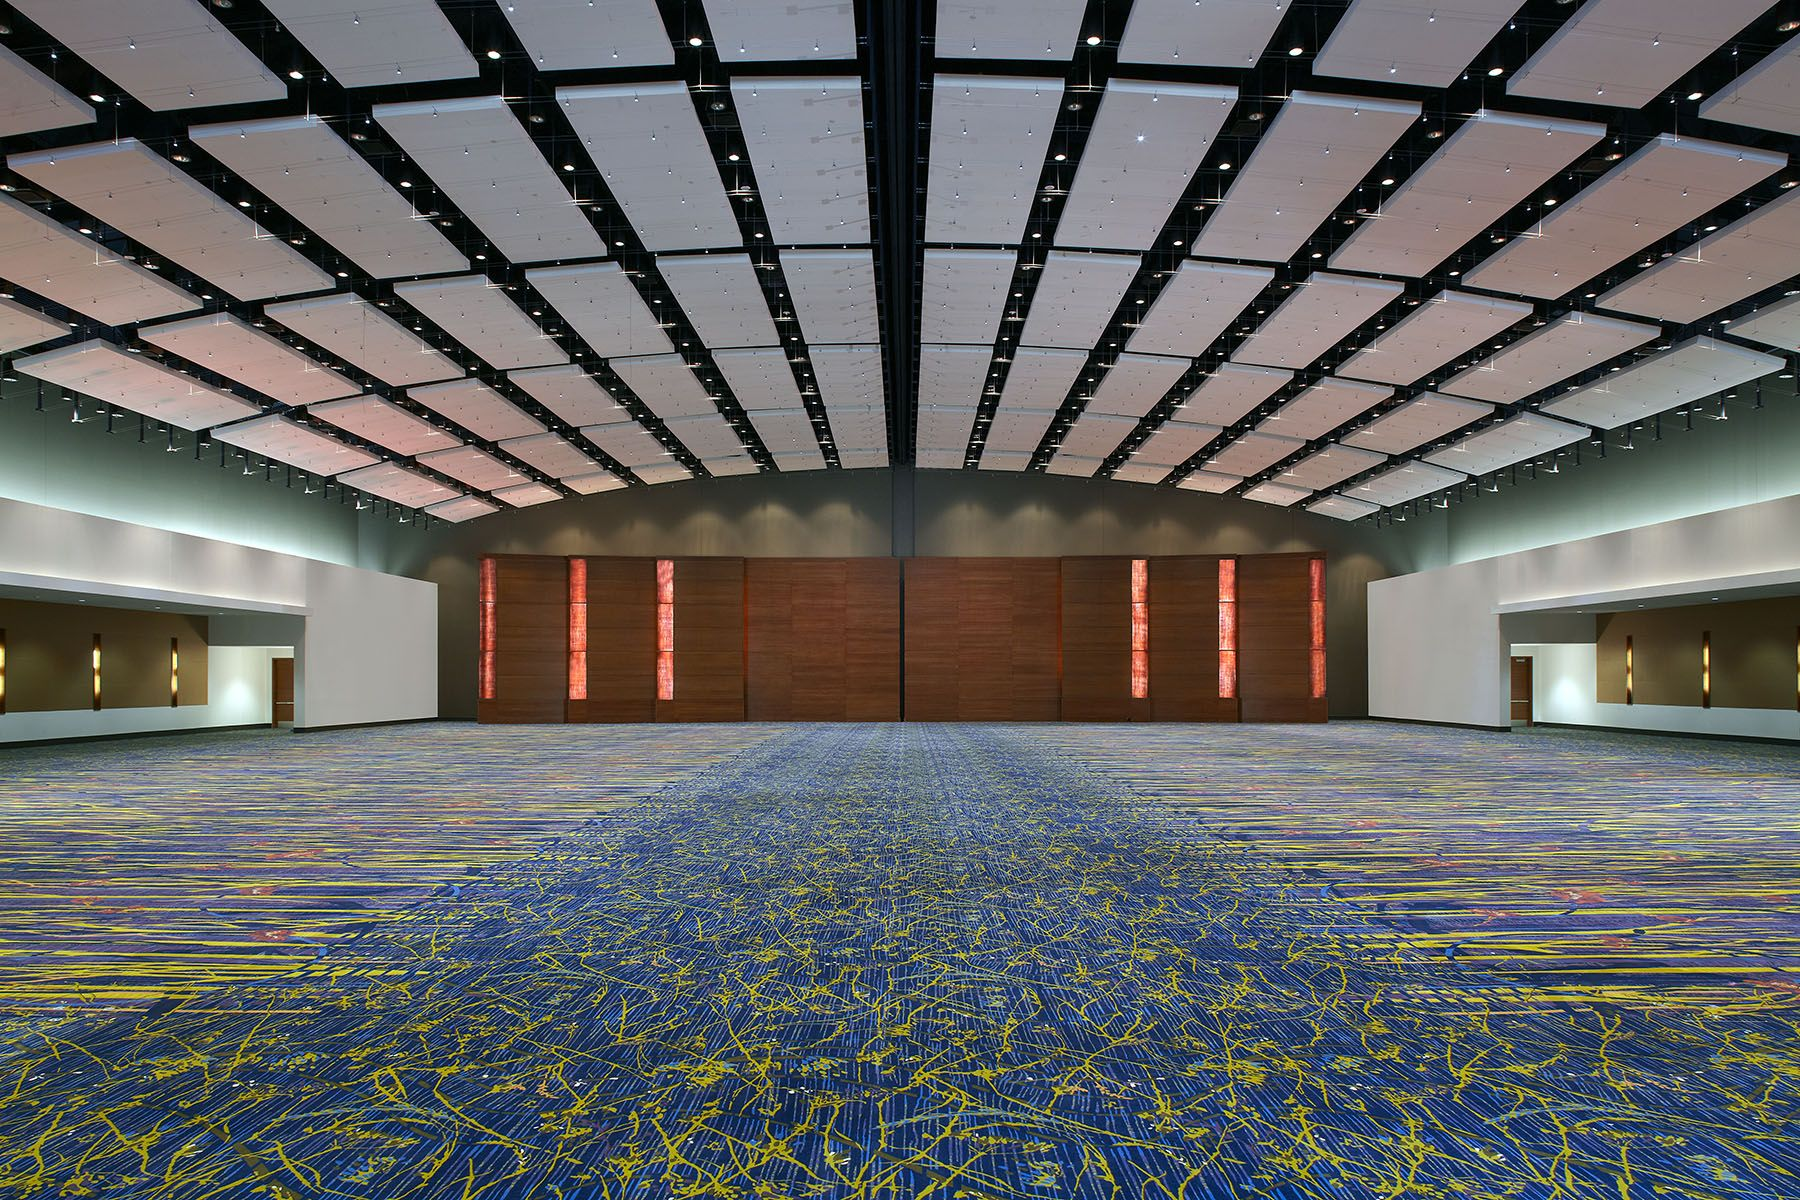 Milliken And Tvsdesign Renovated The New Orleans Ernest N